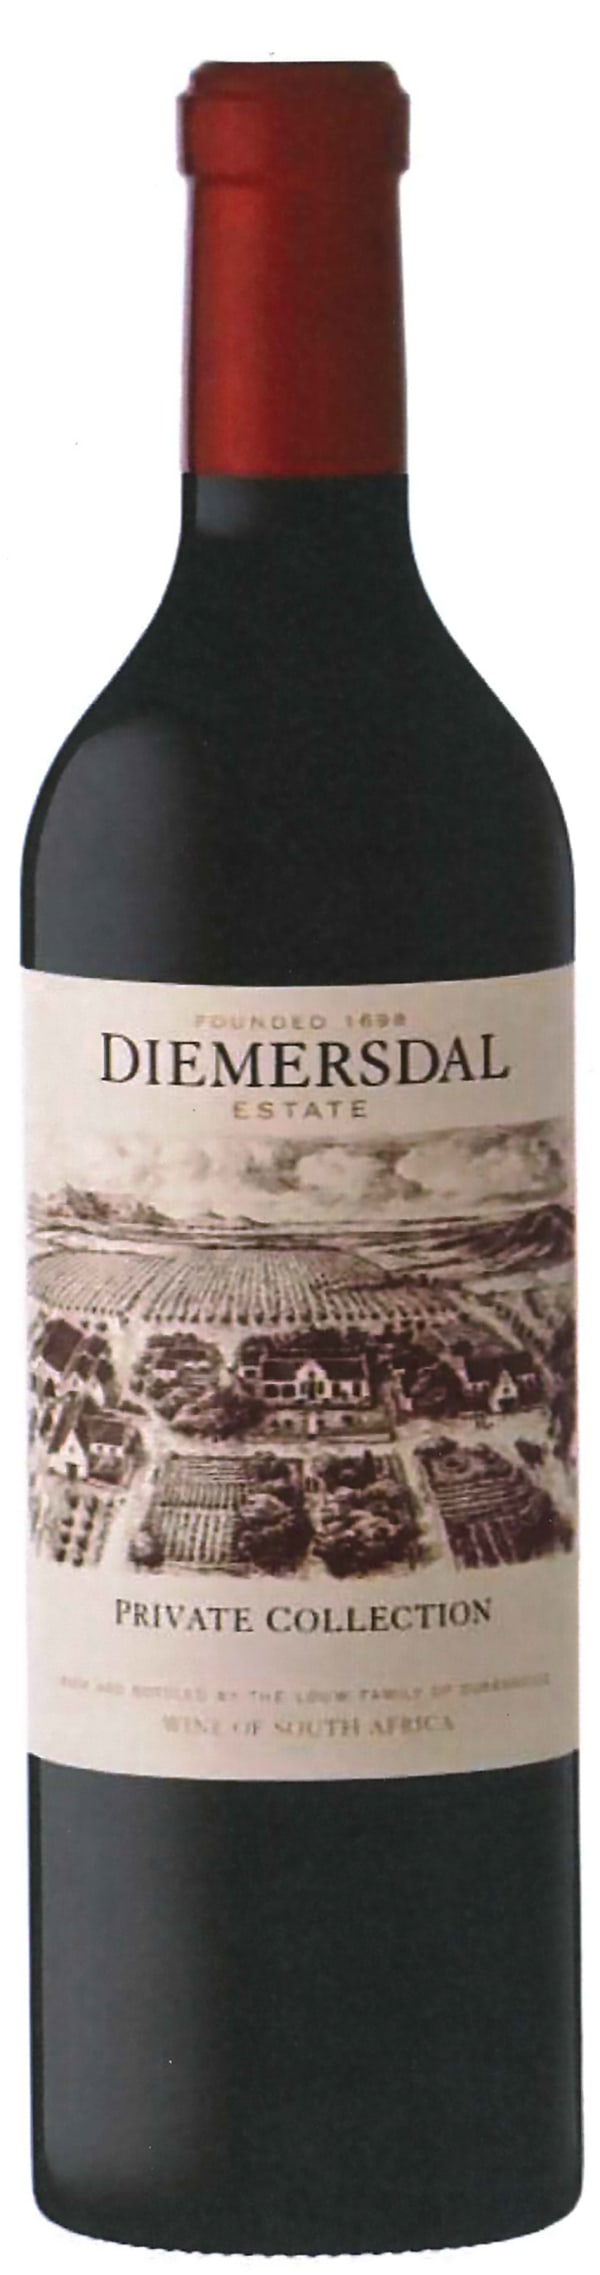 Diemersdal Private Collection 2011